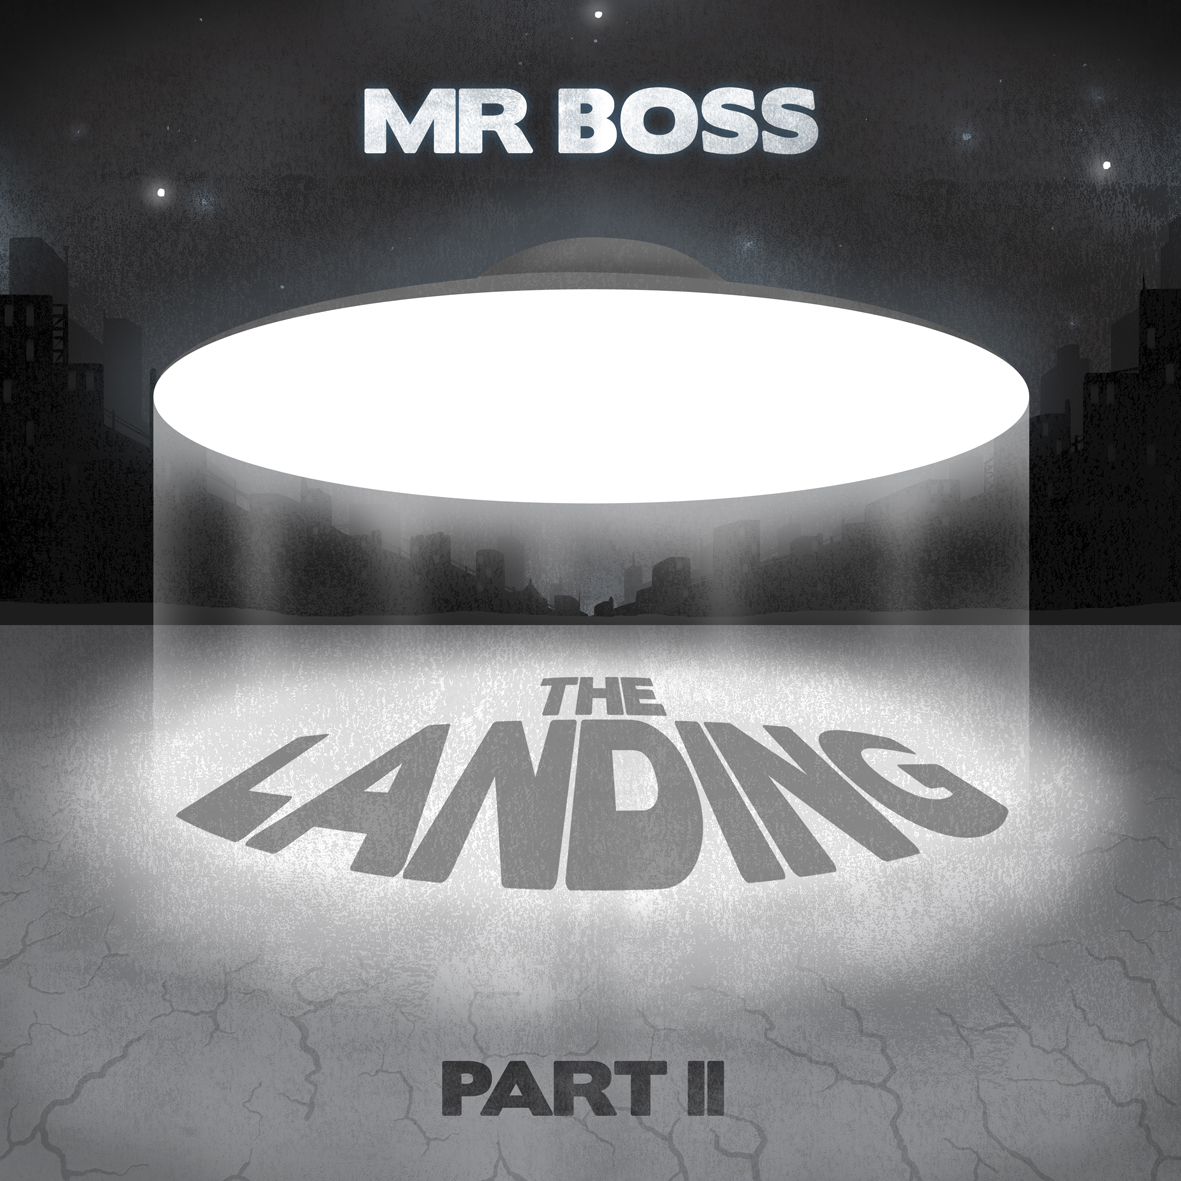 Mr Boss, the landing